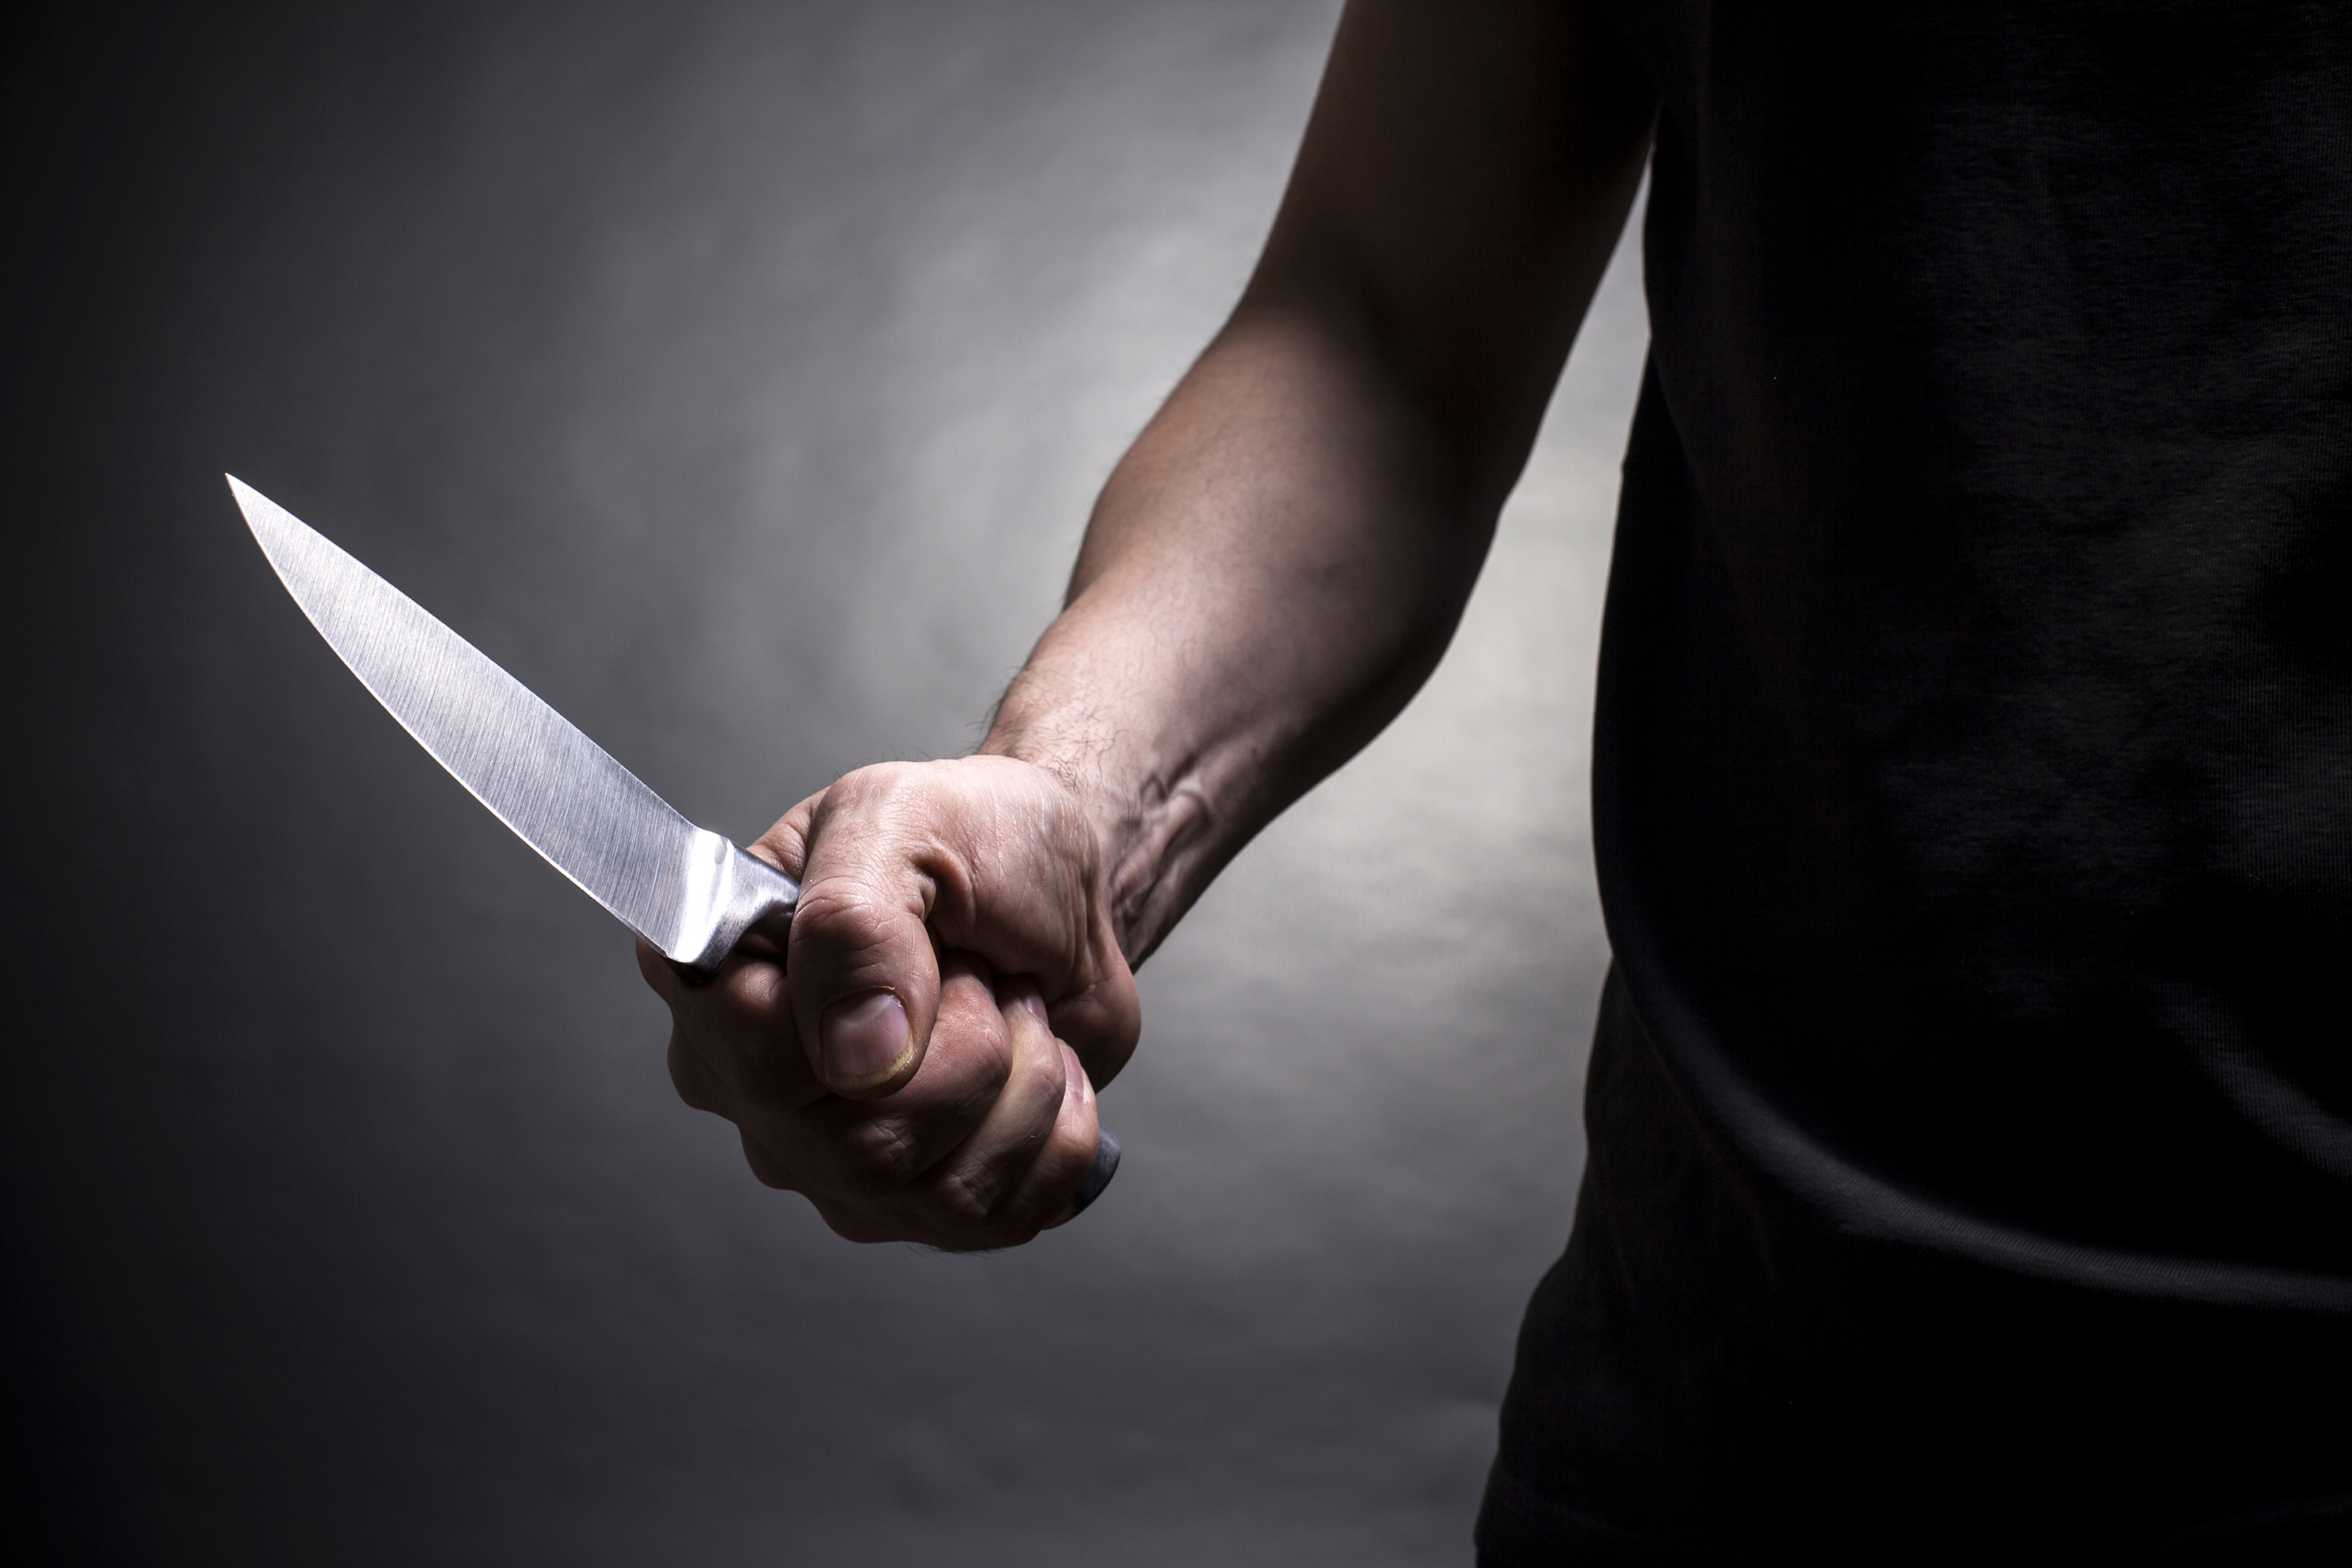 Patiala Murder Case: In a shocking incident, a youth was stabbed to death in broad daylight in Patiala shoe market.